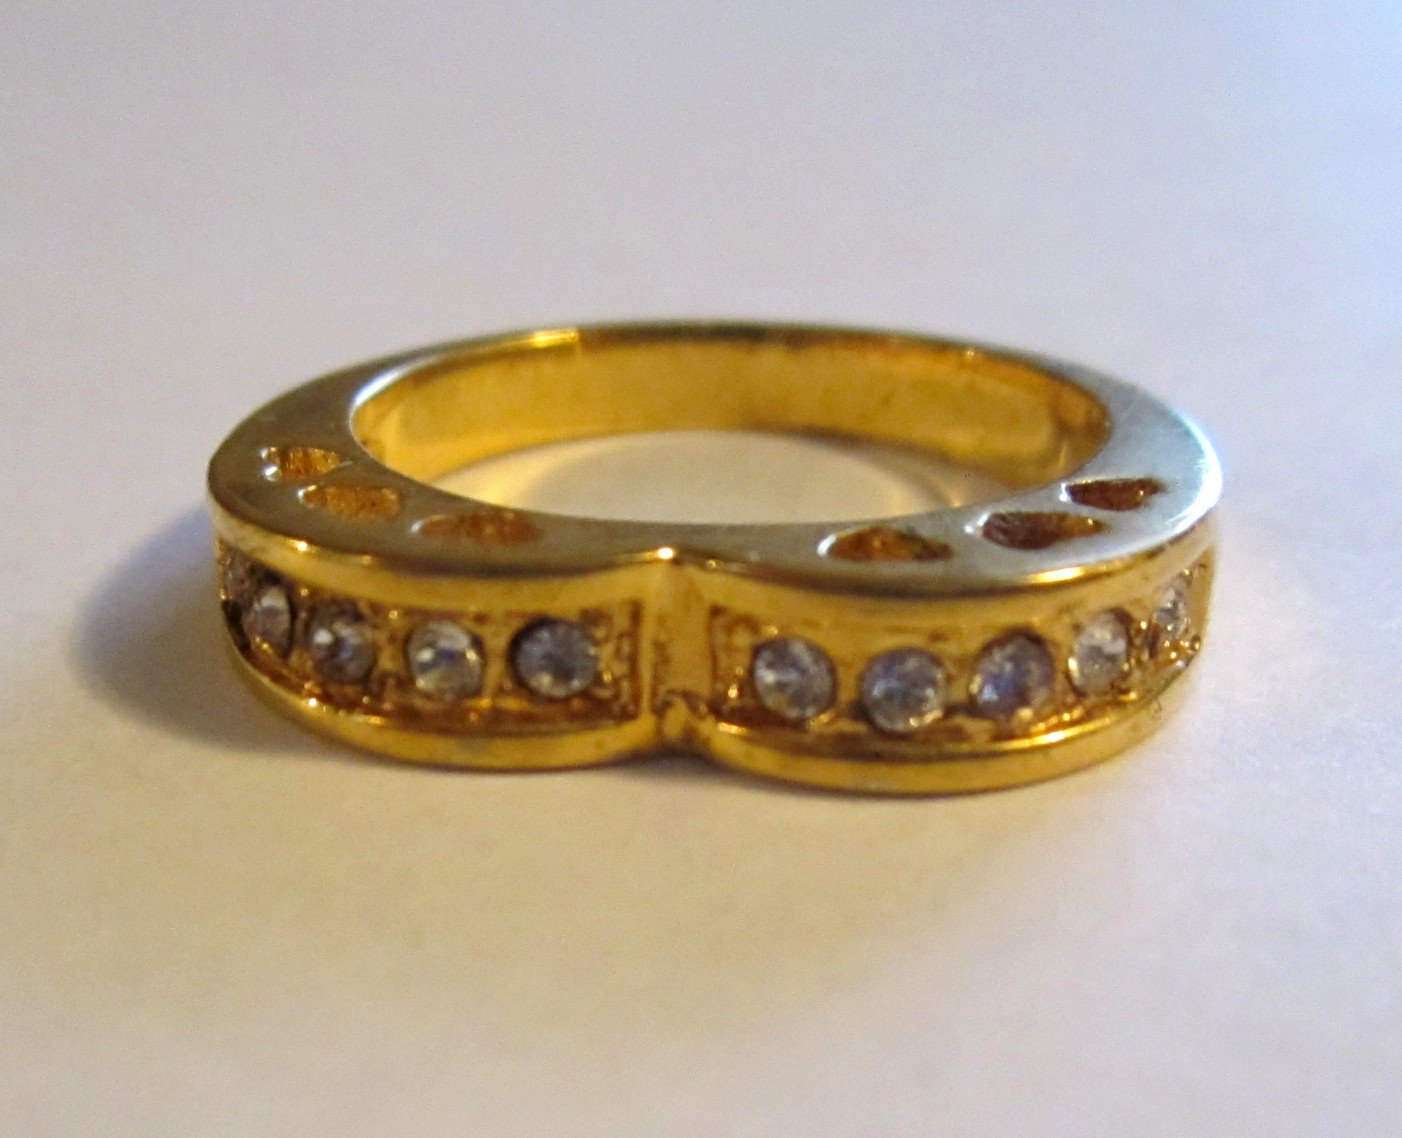 Gold Tone Heart Ring Size 7.5 (wtn823)